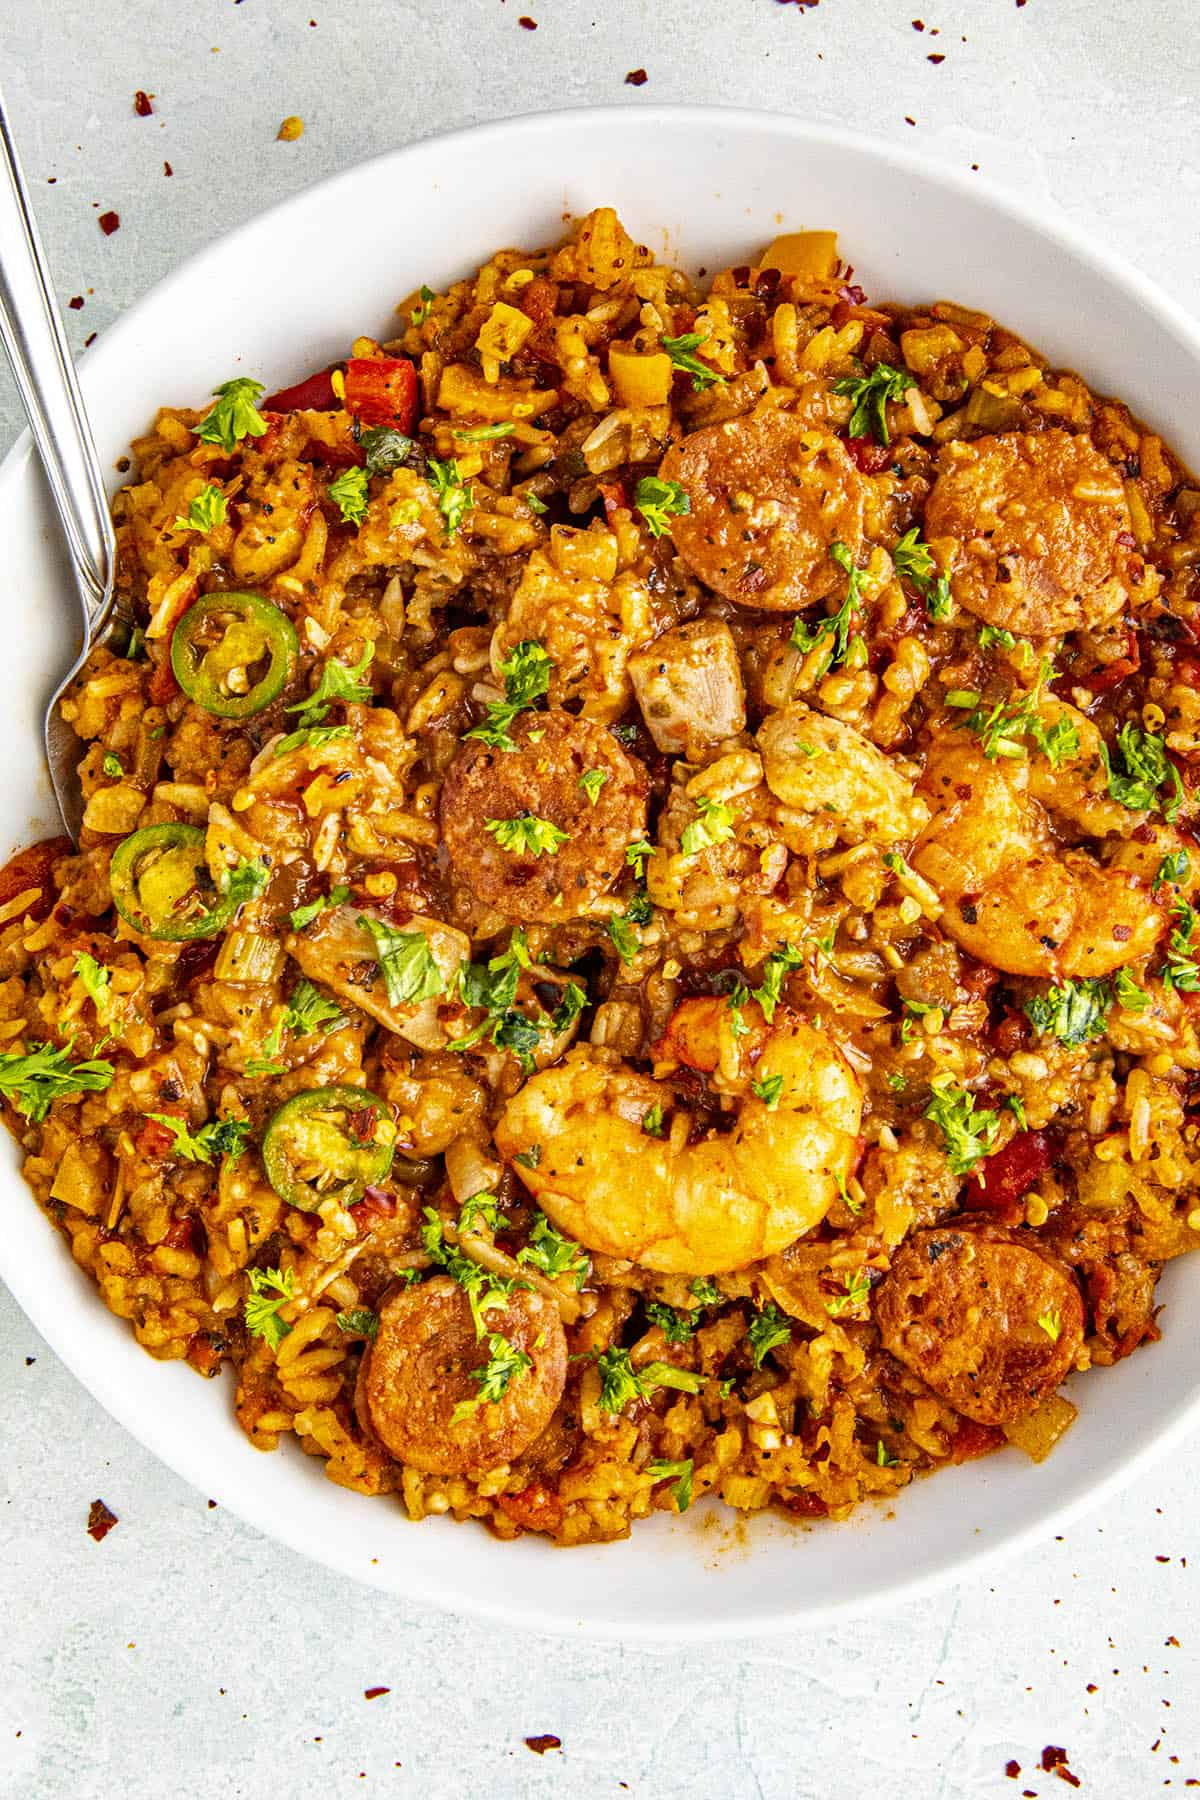 Delicious jambalaya in a bowl, ready to enjoy